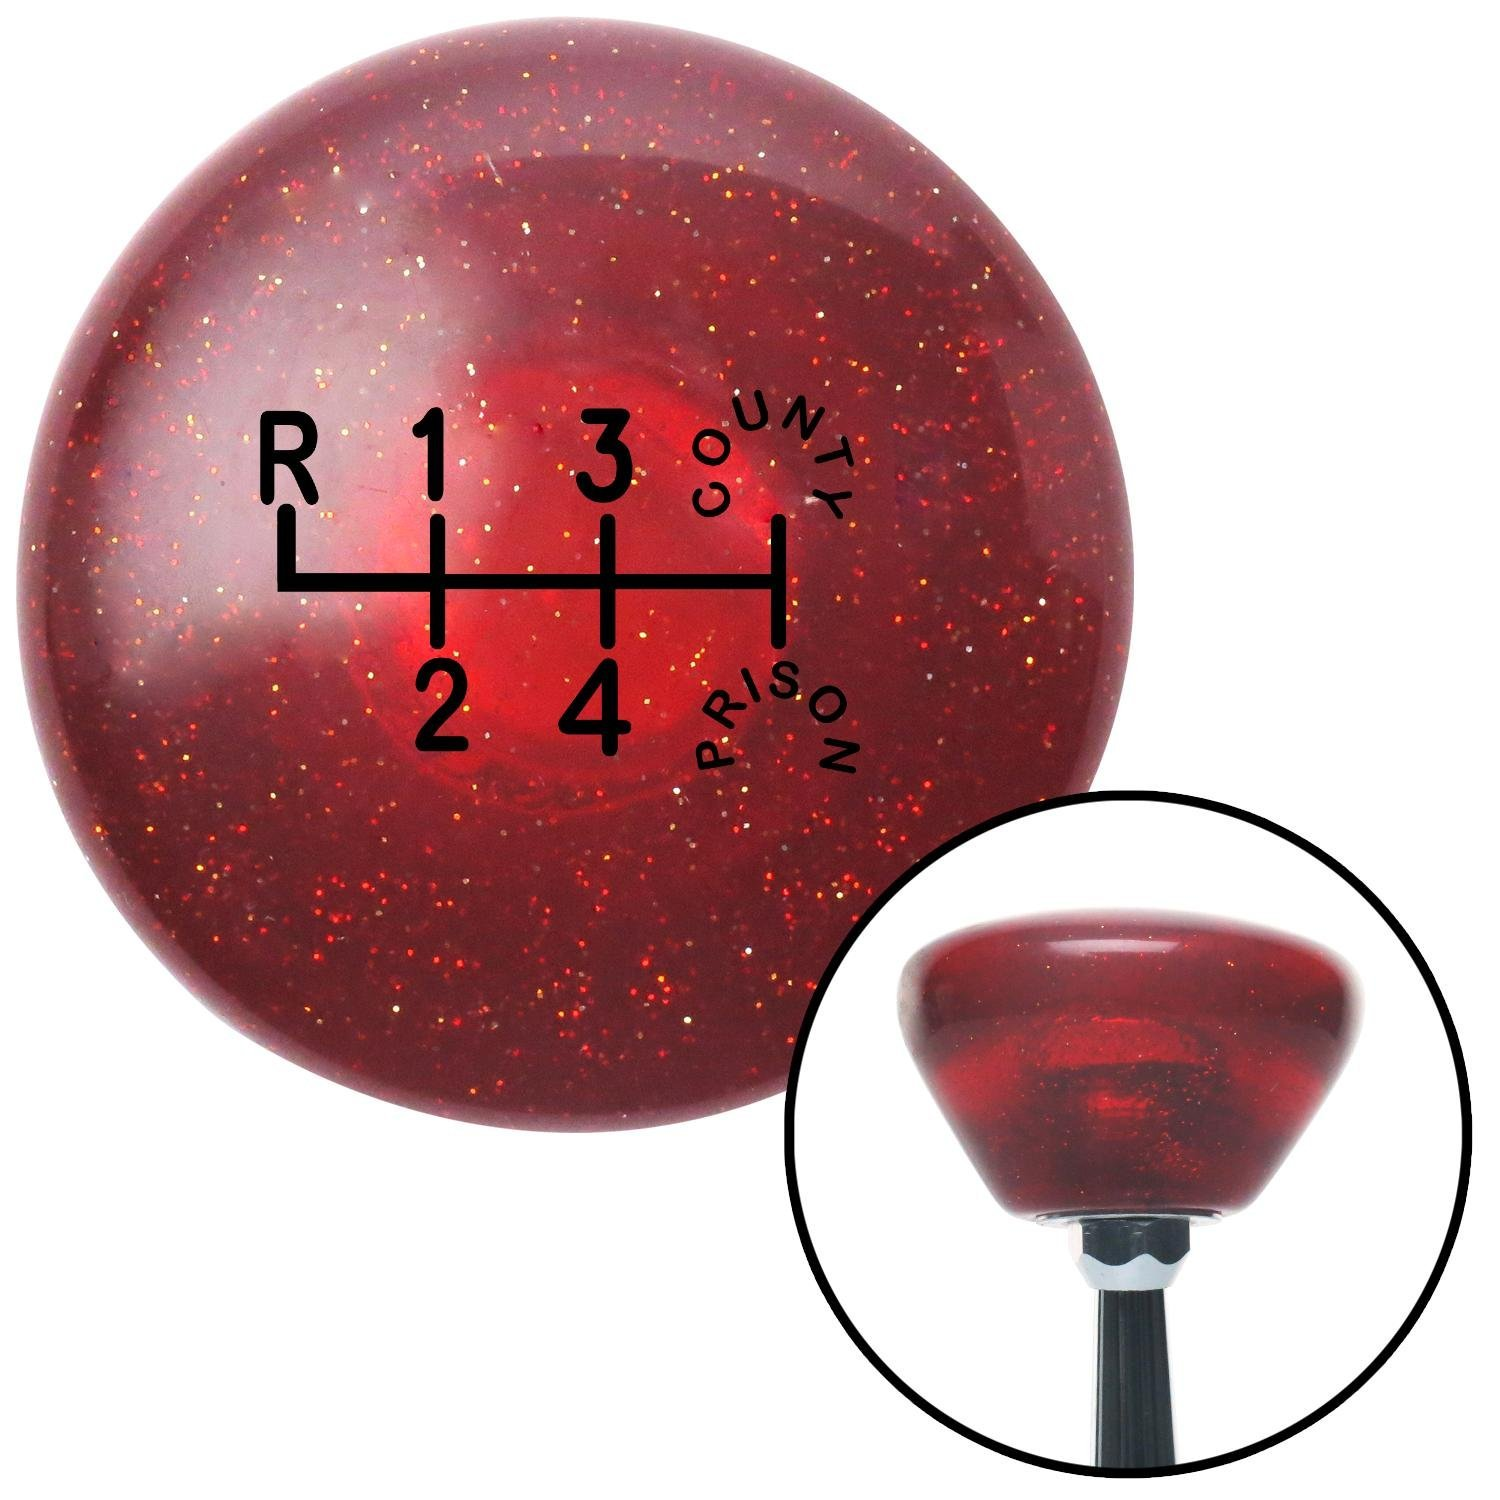 American Shifter 193115 Red Retro Metal Flake Shift Knob with M16 x 1.5 Insert Black County Prison